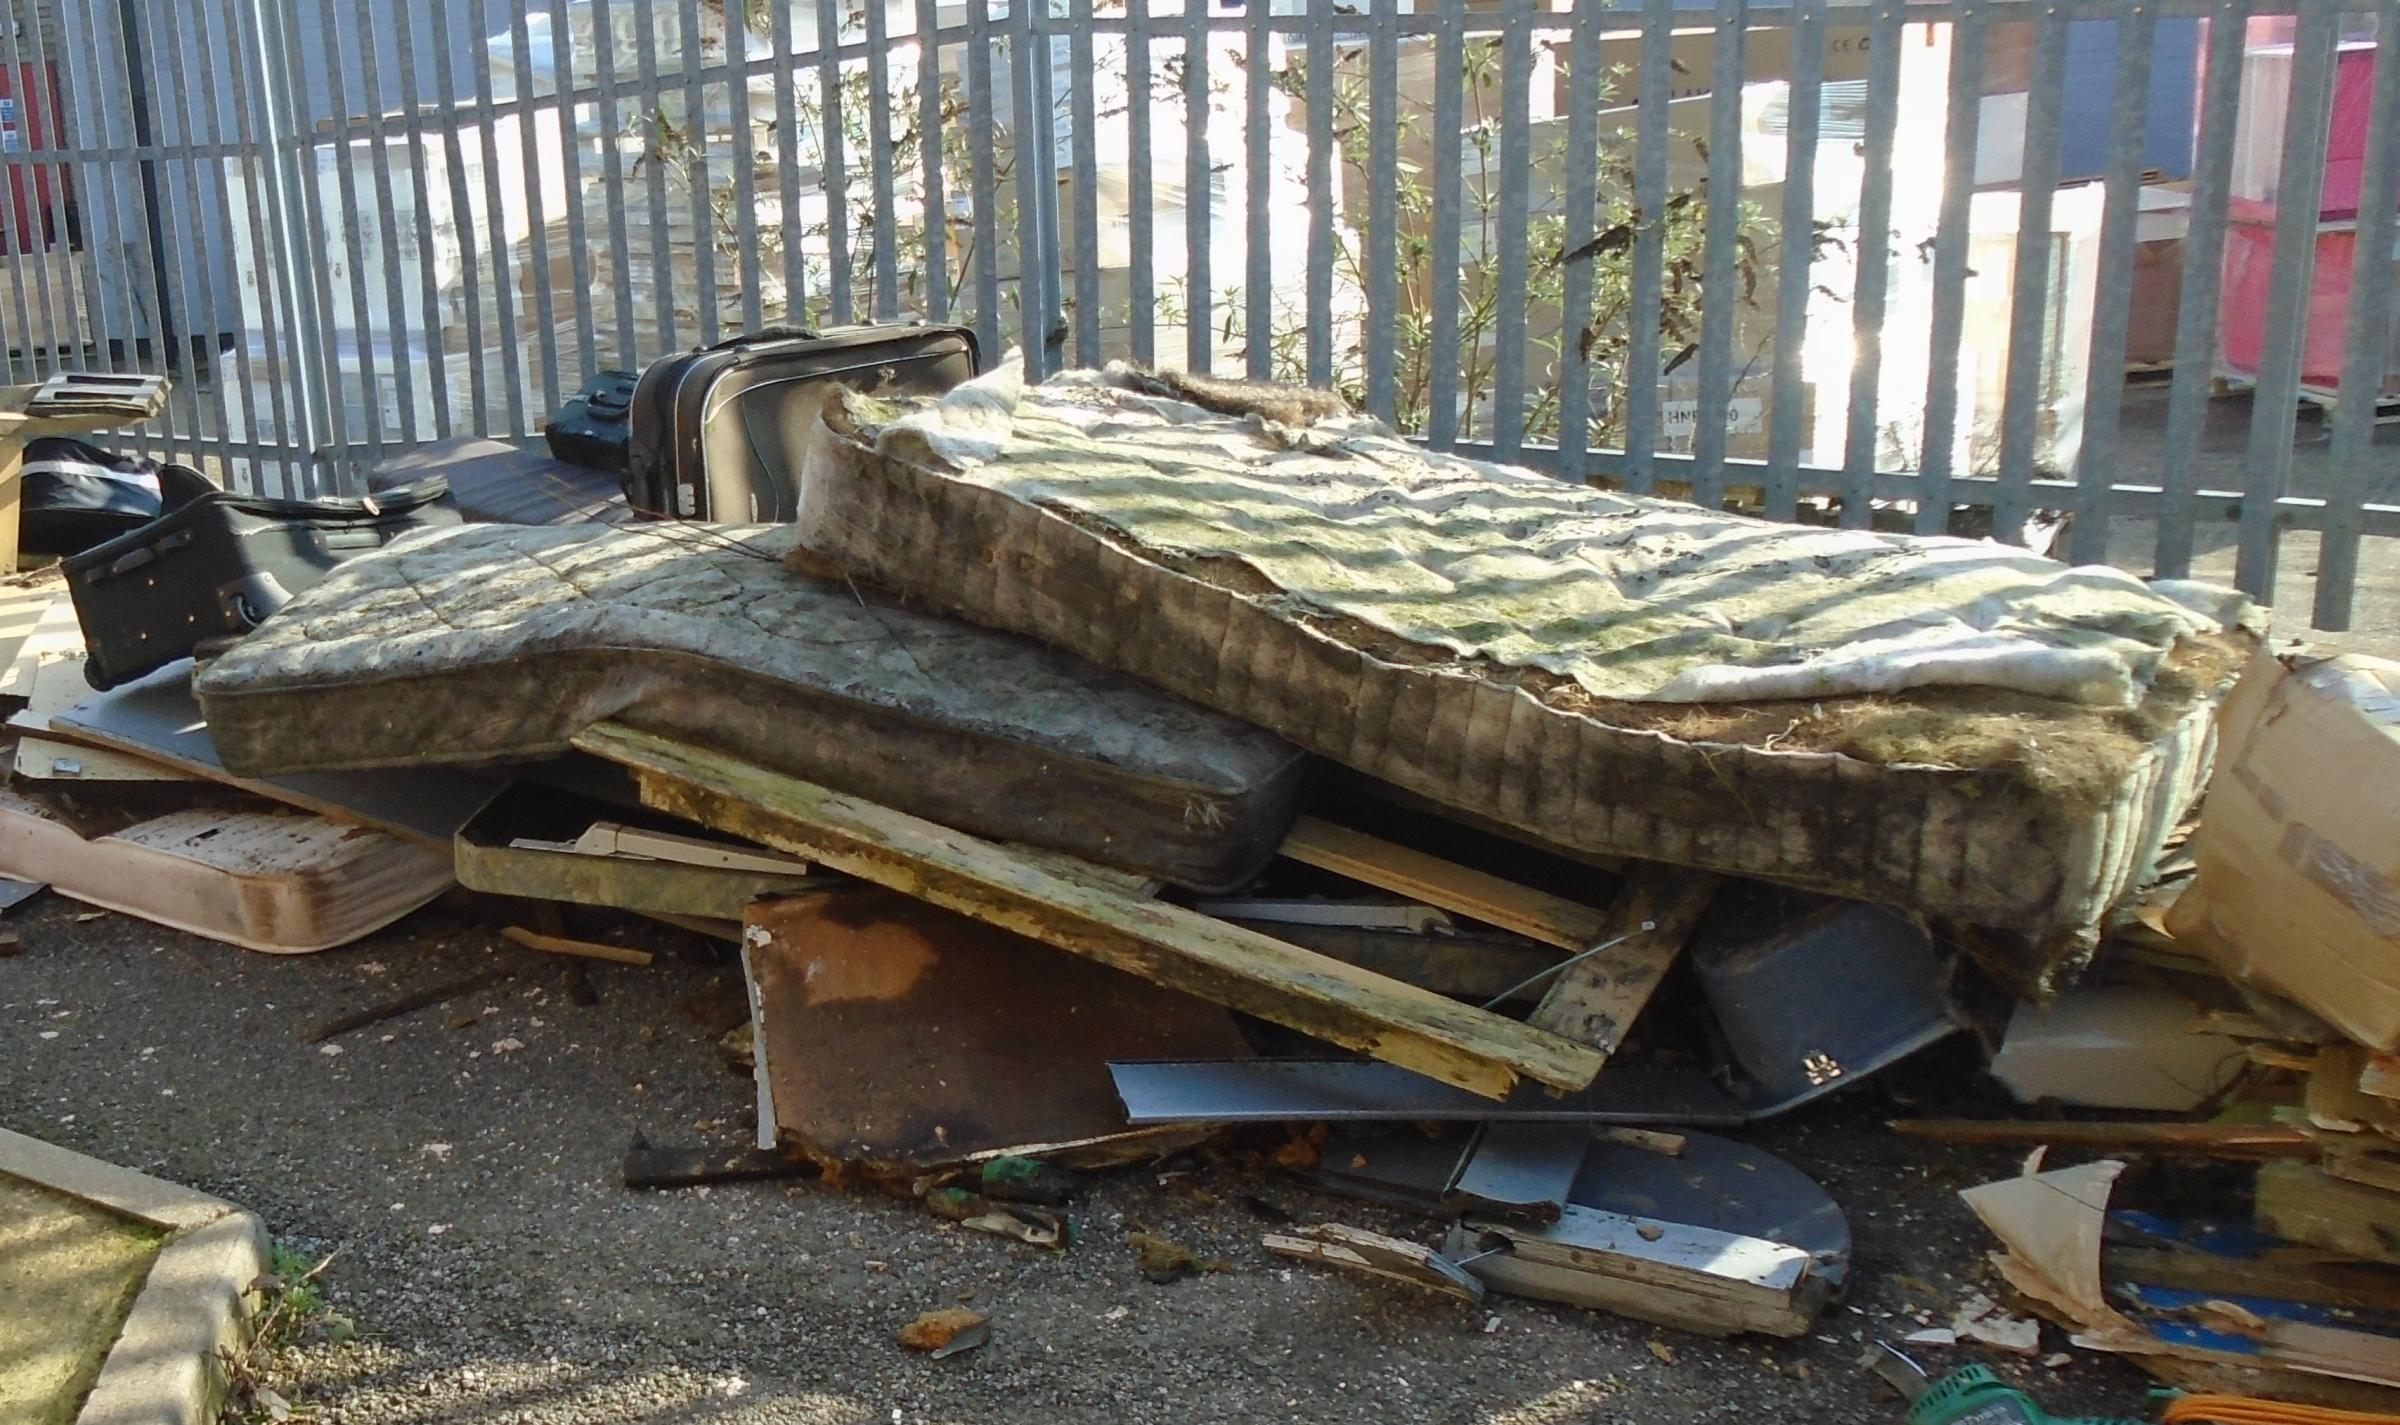 An example of flytipping in Watford